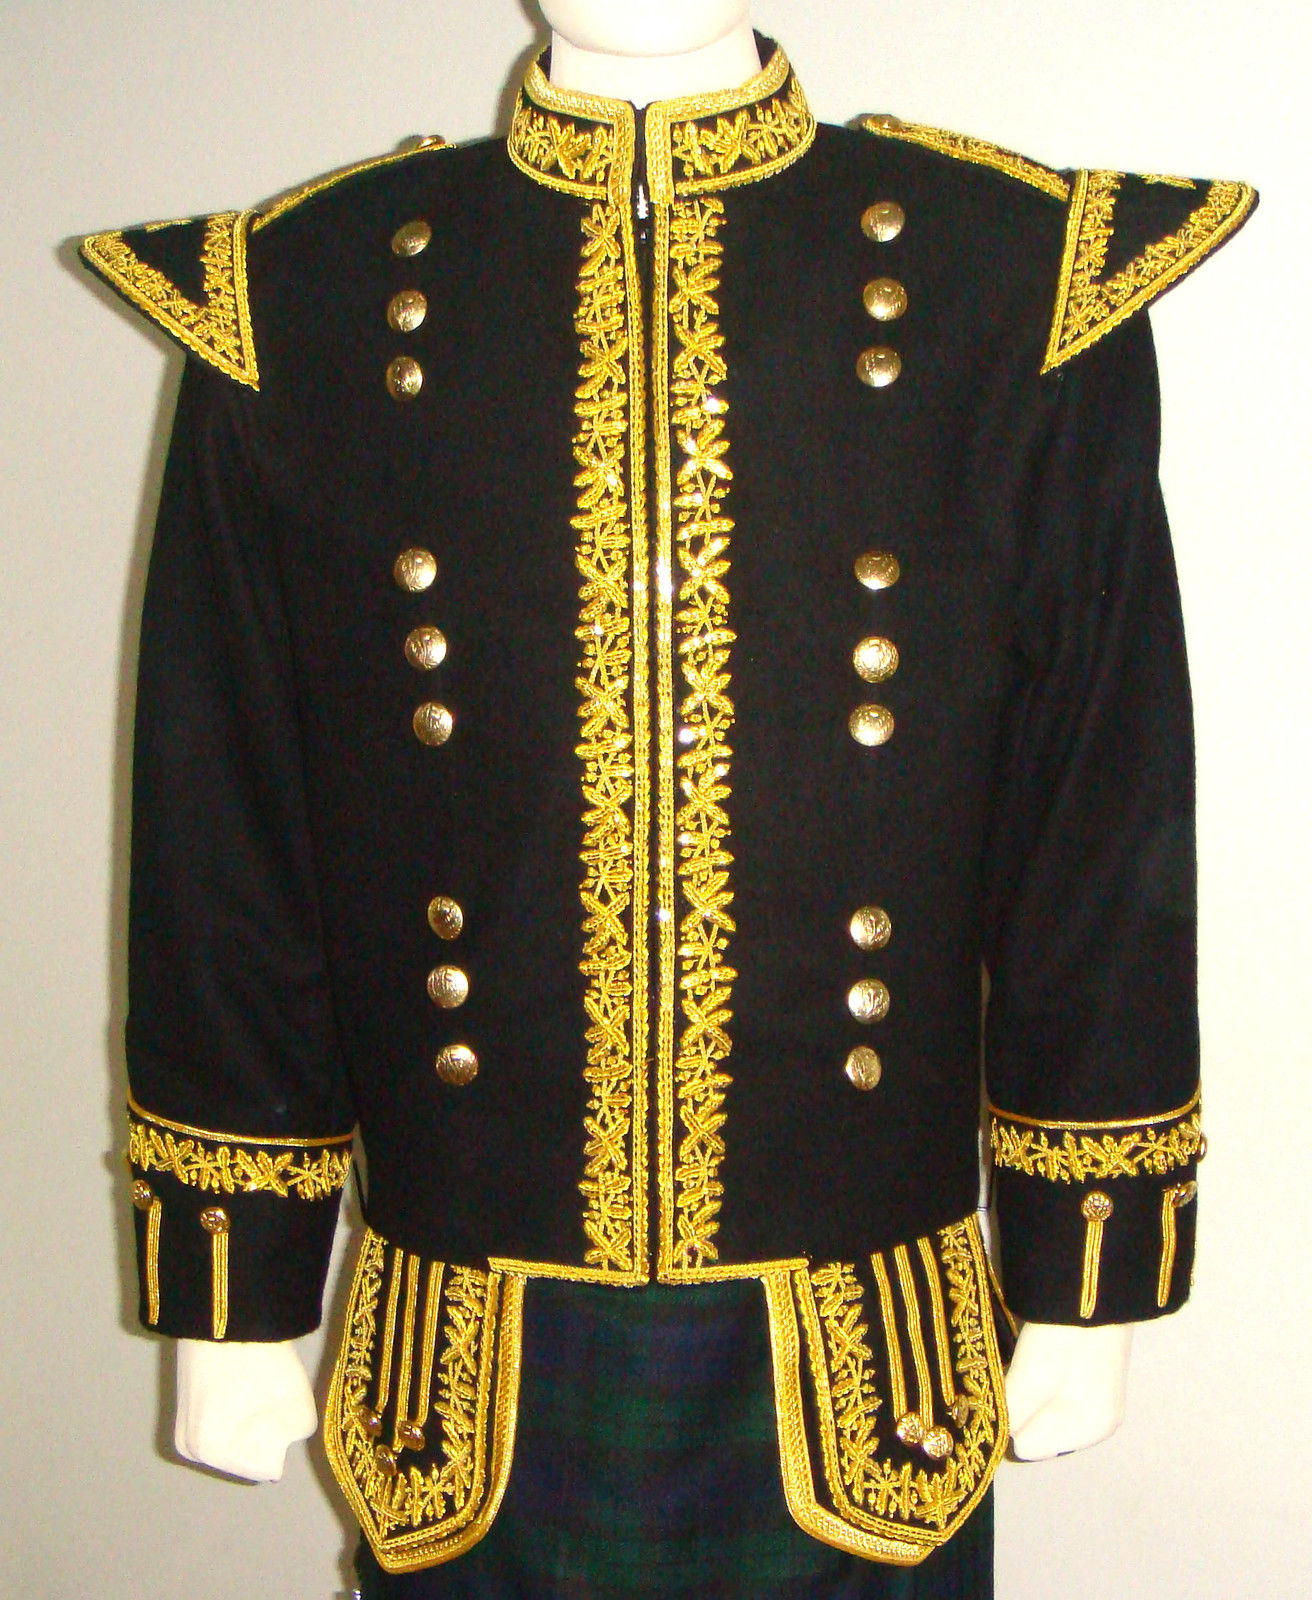 Military Doublet Jacket Black with Golden Braid work